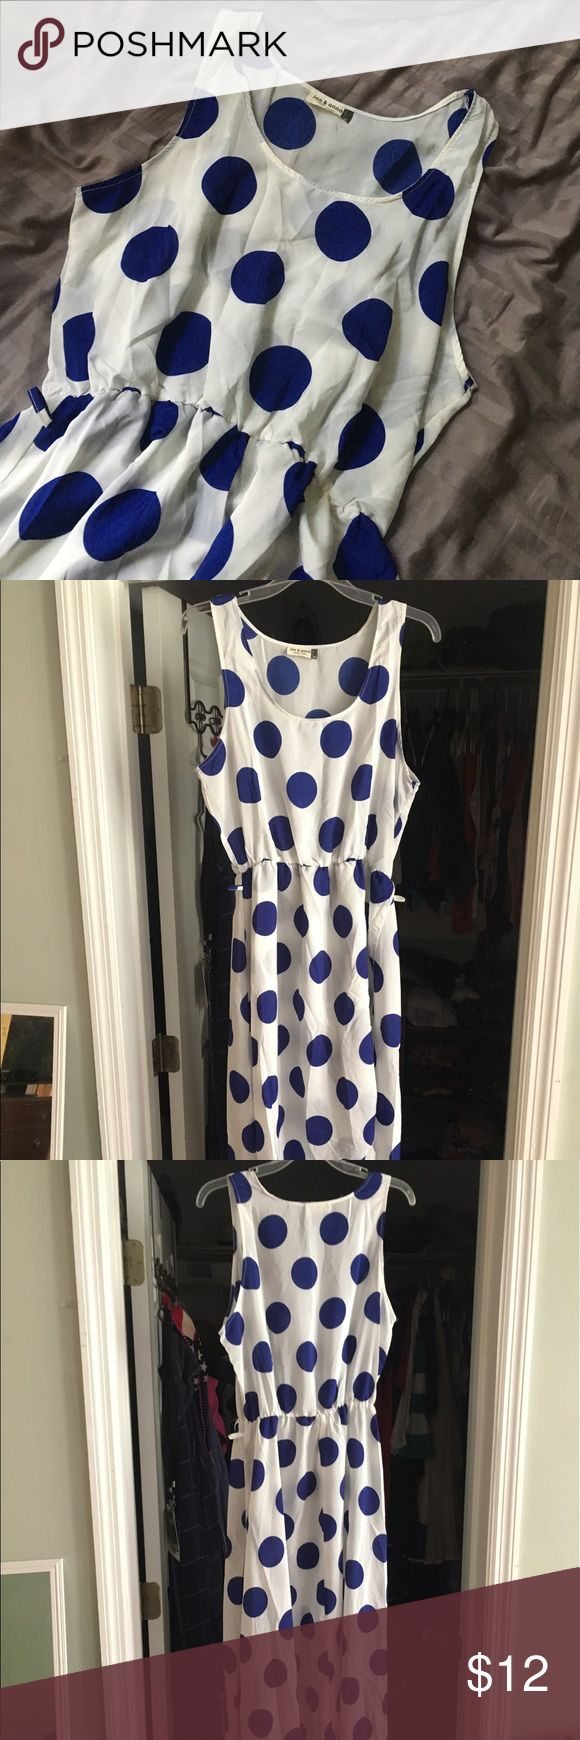 NWOT Blue Polka-Dot Wrap Flowy Maxi Dress M Never worn super cute flowy polka dot dress! I have it in teal and hot pink and for some reason I always wear the teal one! Looks super cute with cowboy boots and a small belt (has loops). I bought the teal and loved it to much I bought this one and the pink (listed) brand new as well! Stretchy waistband - if you like slouchy like me it fits a Small if you want it a little more form flattering it's great for M! Would be cute with a red skinny belt…